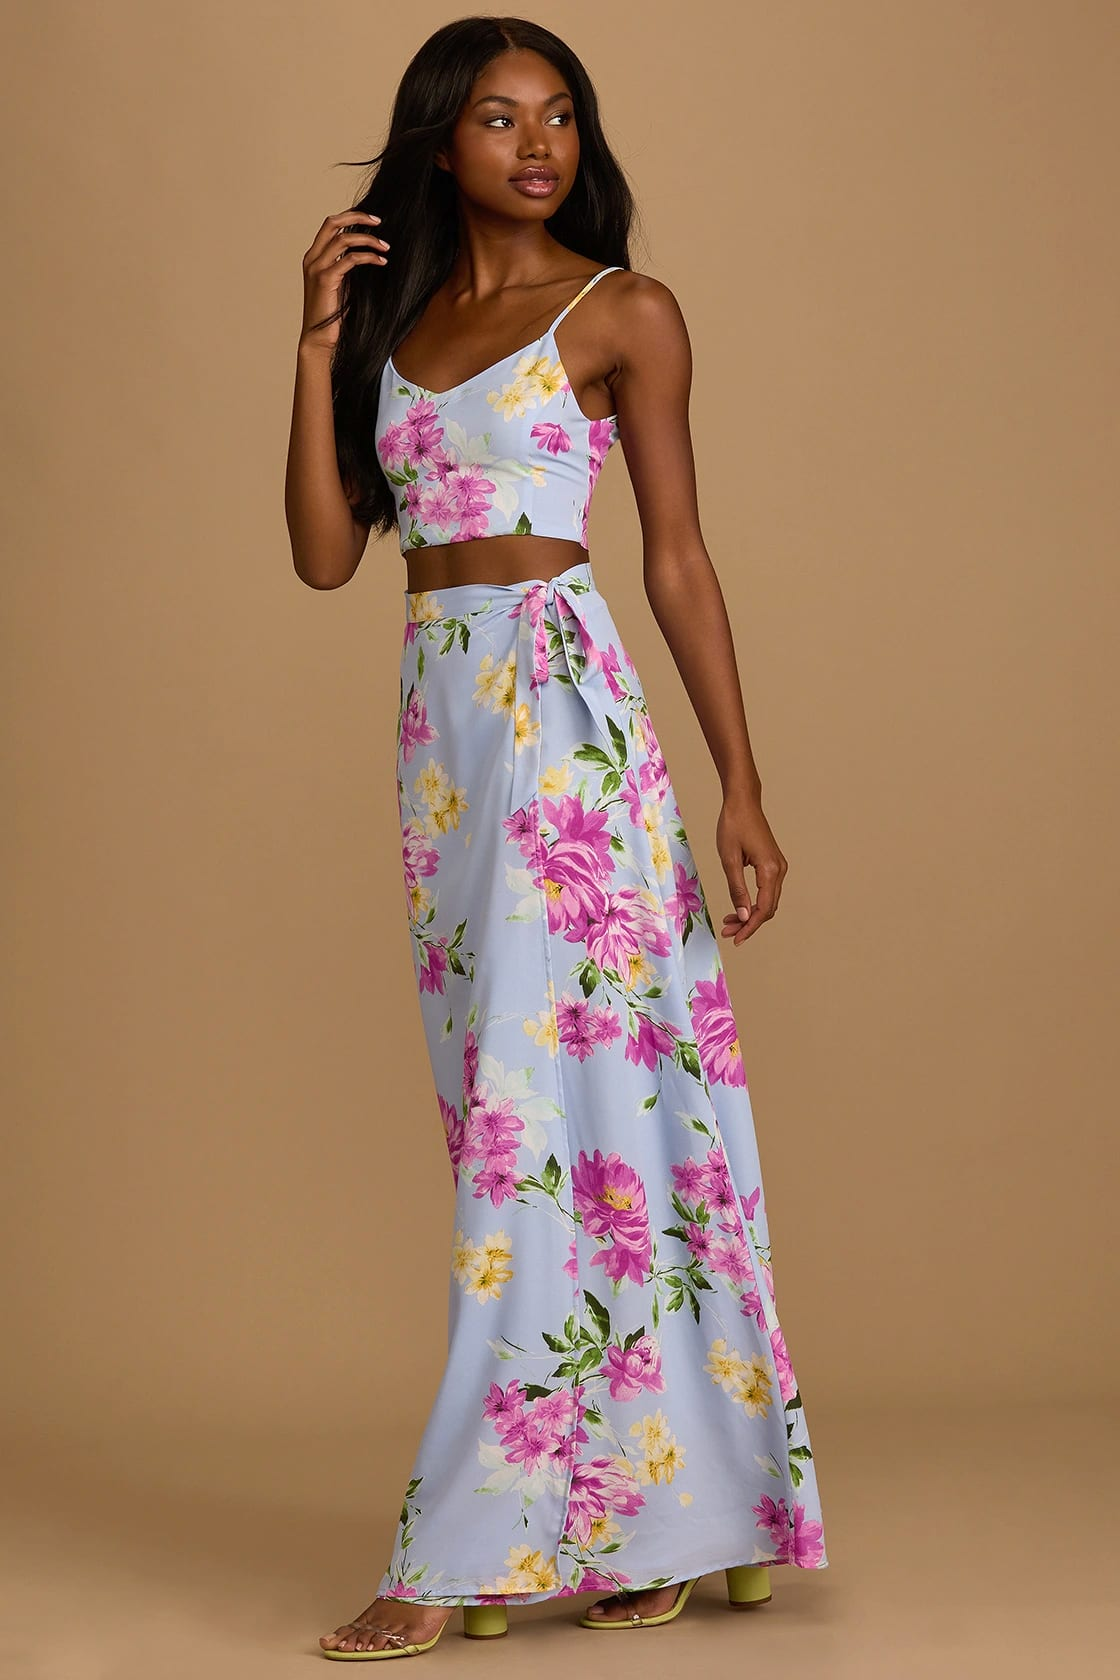 Where to Buy Floral Print Bridesmaid Dresses Light Blue Floral Bridesmaid Dresses Lulus 2Where to Buy Floral Print Bridesmaid Dresses Light Blue Floral Bridesmaid Dresses Lulus 2